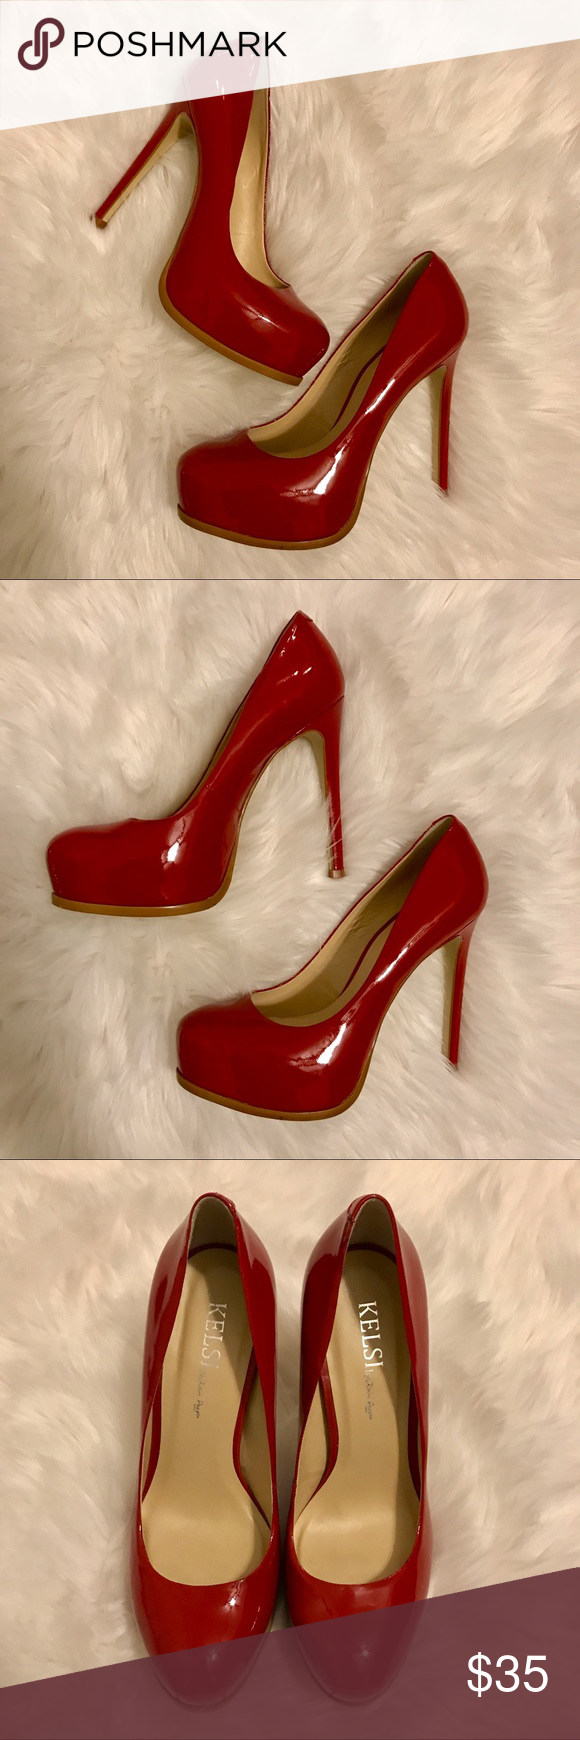 55eaf51be751 Kelsi Dagger Red Round Toe Patent Pumps Red Round Toe Patent Pumps - very  minimal wear - only noticeable on the bottoms of the shoes.